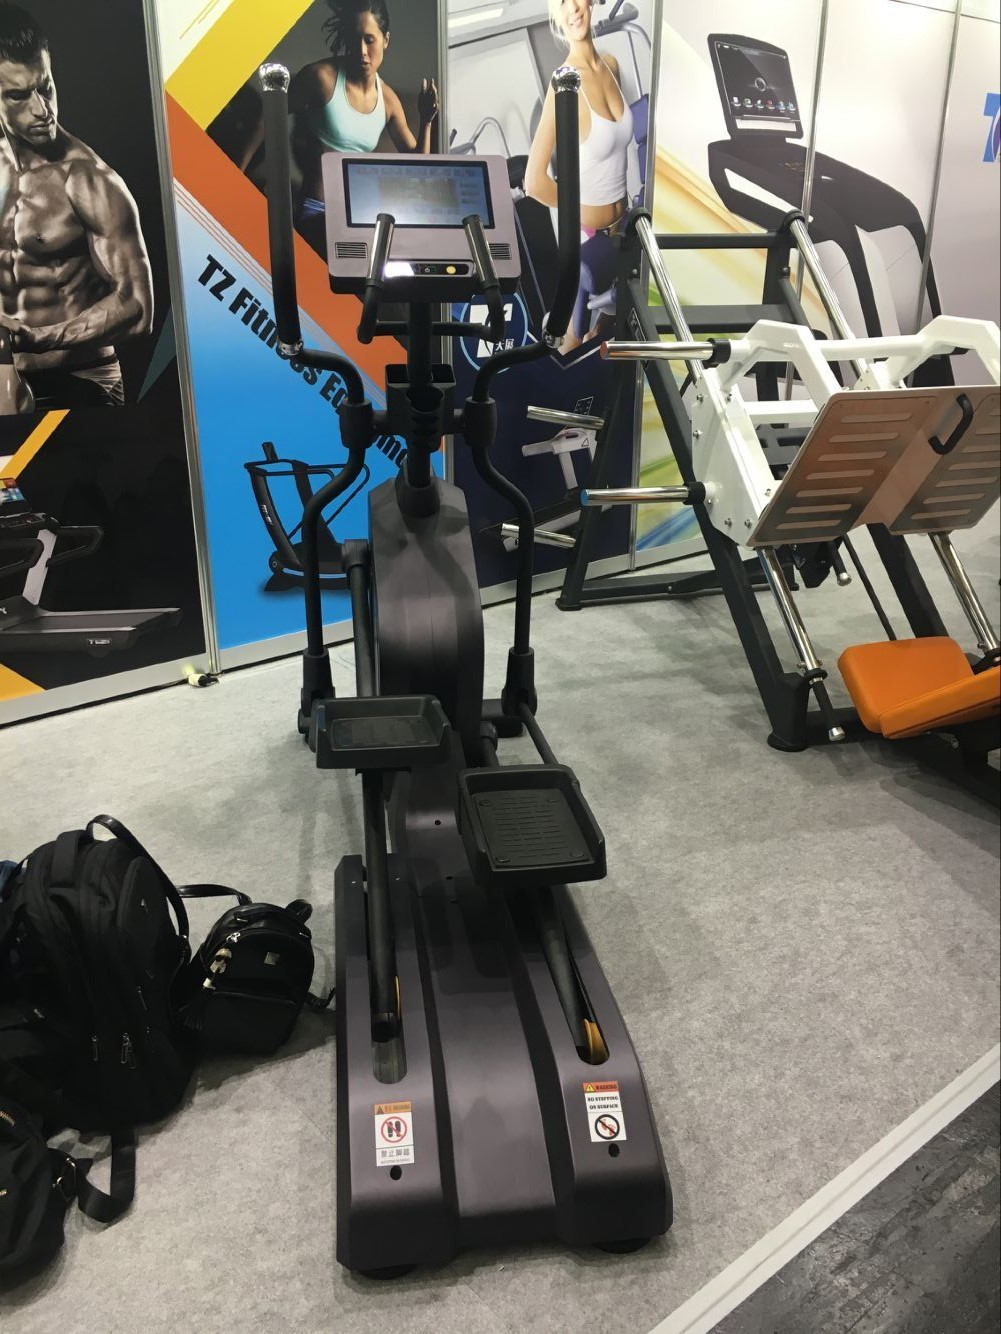 TZ-e2010 Fiets Fitness Cross Trainer Machine Commerciële Gym Elliptische Trainer